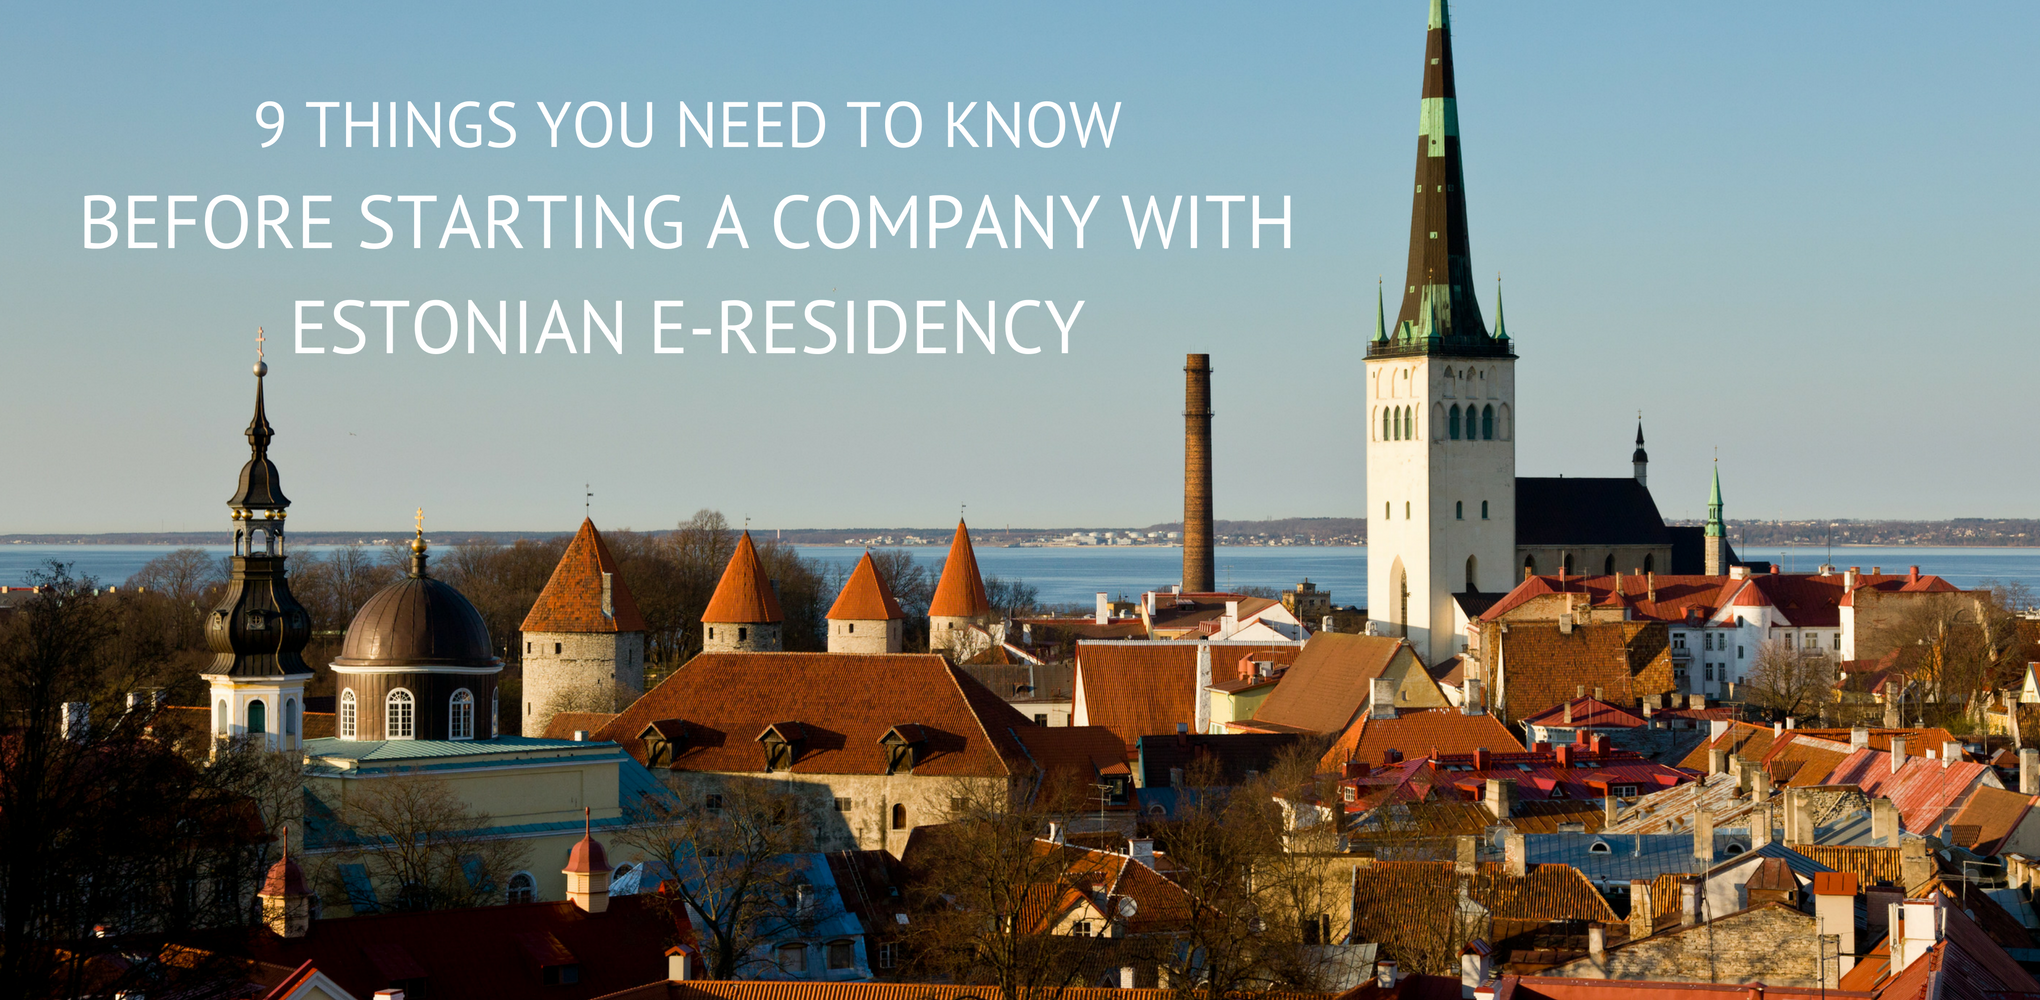 f4bca02b902 Some of the world's fastest growing companies started in the small northern  European nation of Estonia. In fact, you may have already used Estonian  startups ...